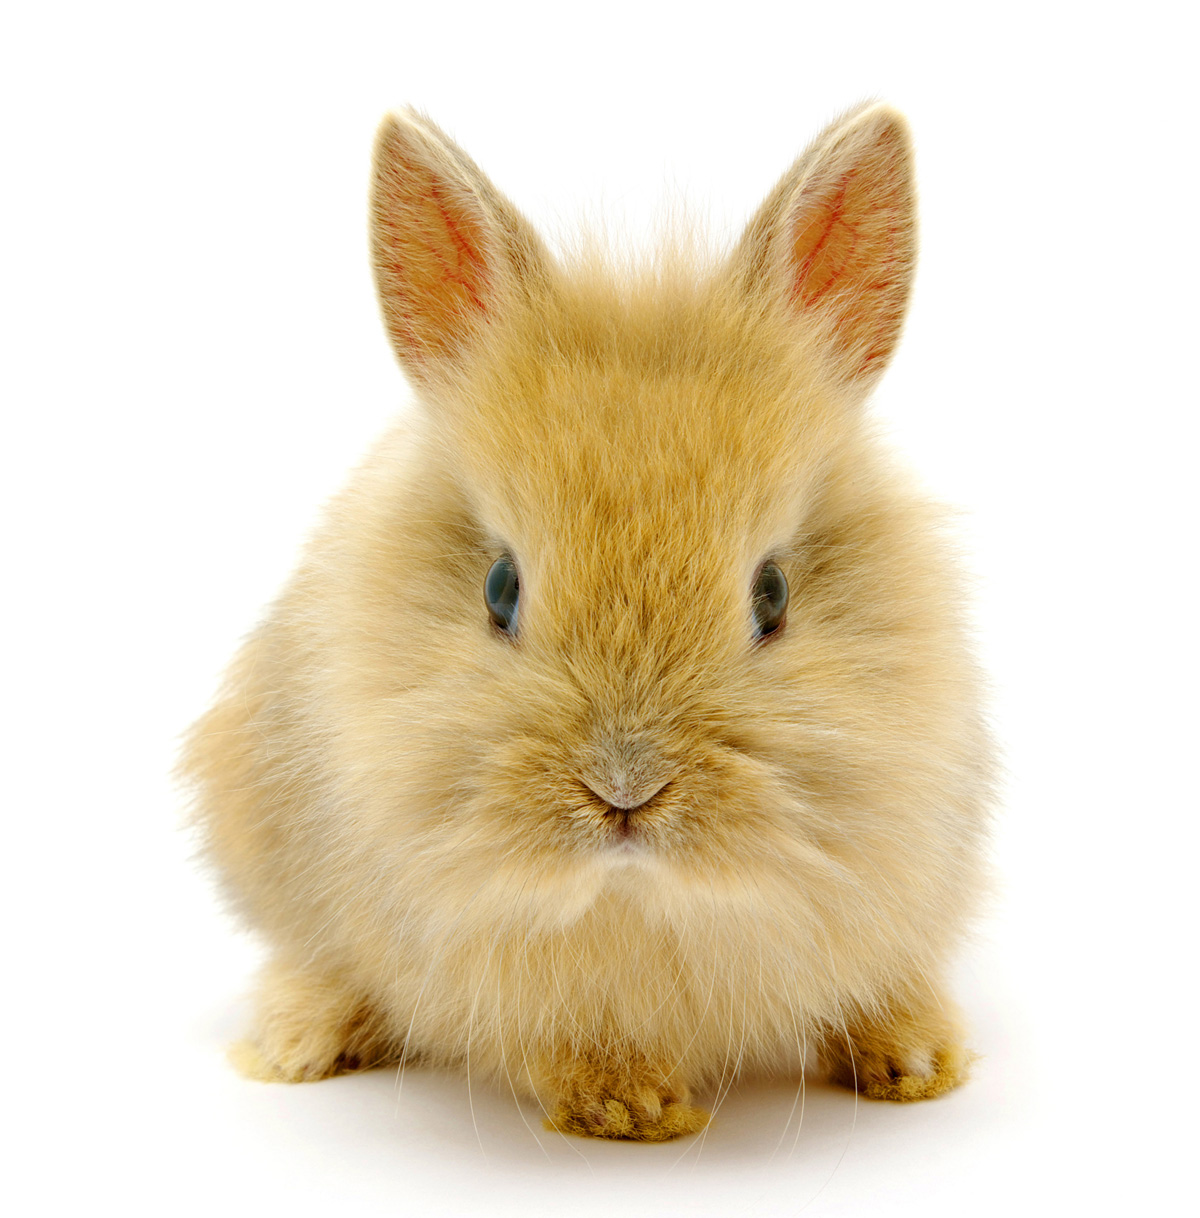 Cute little bunny 20973